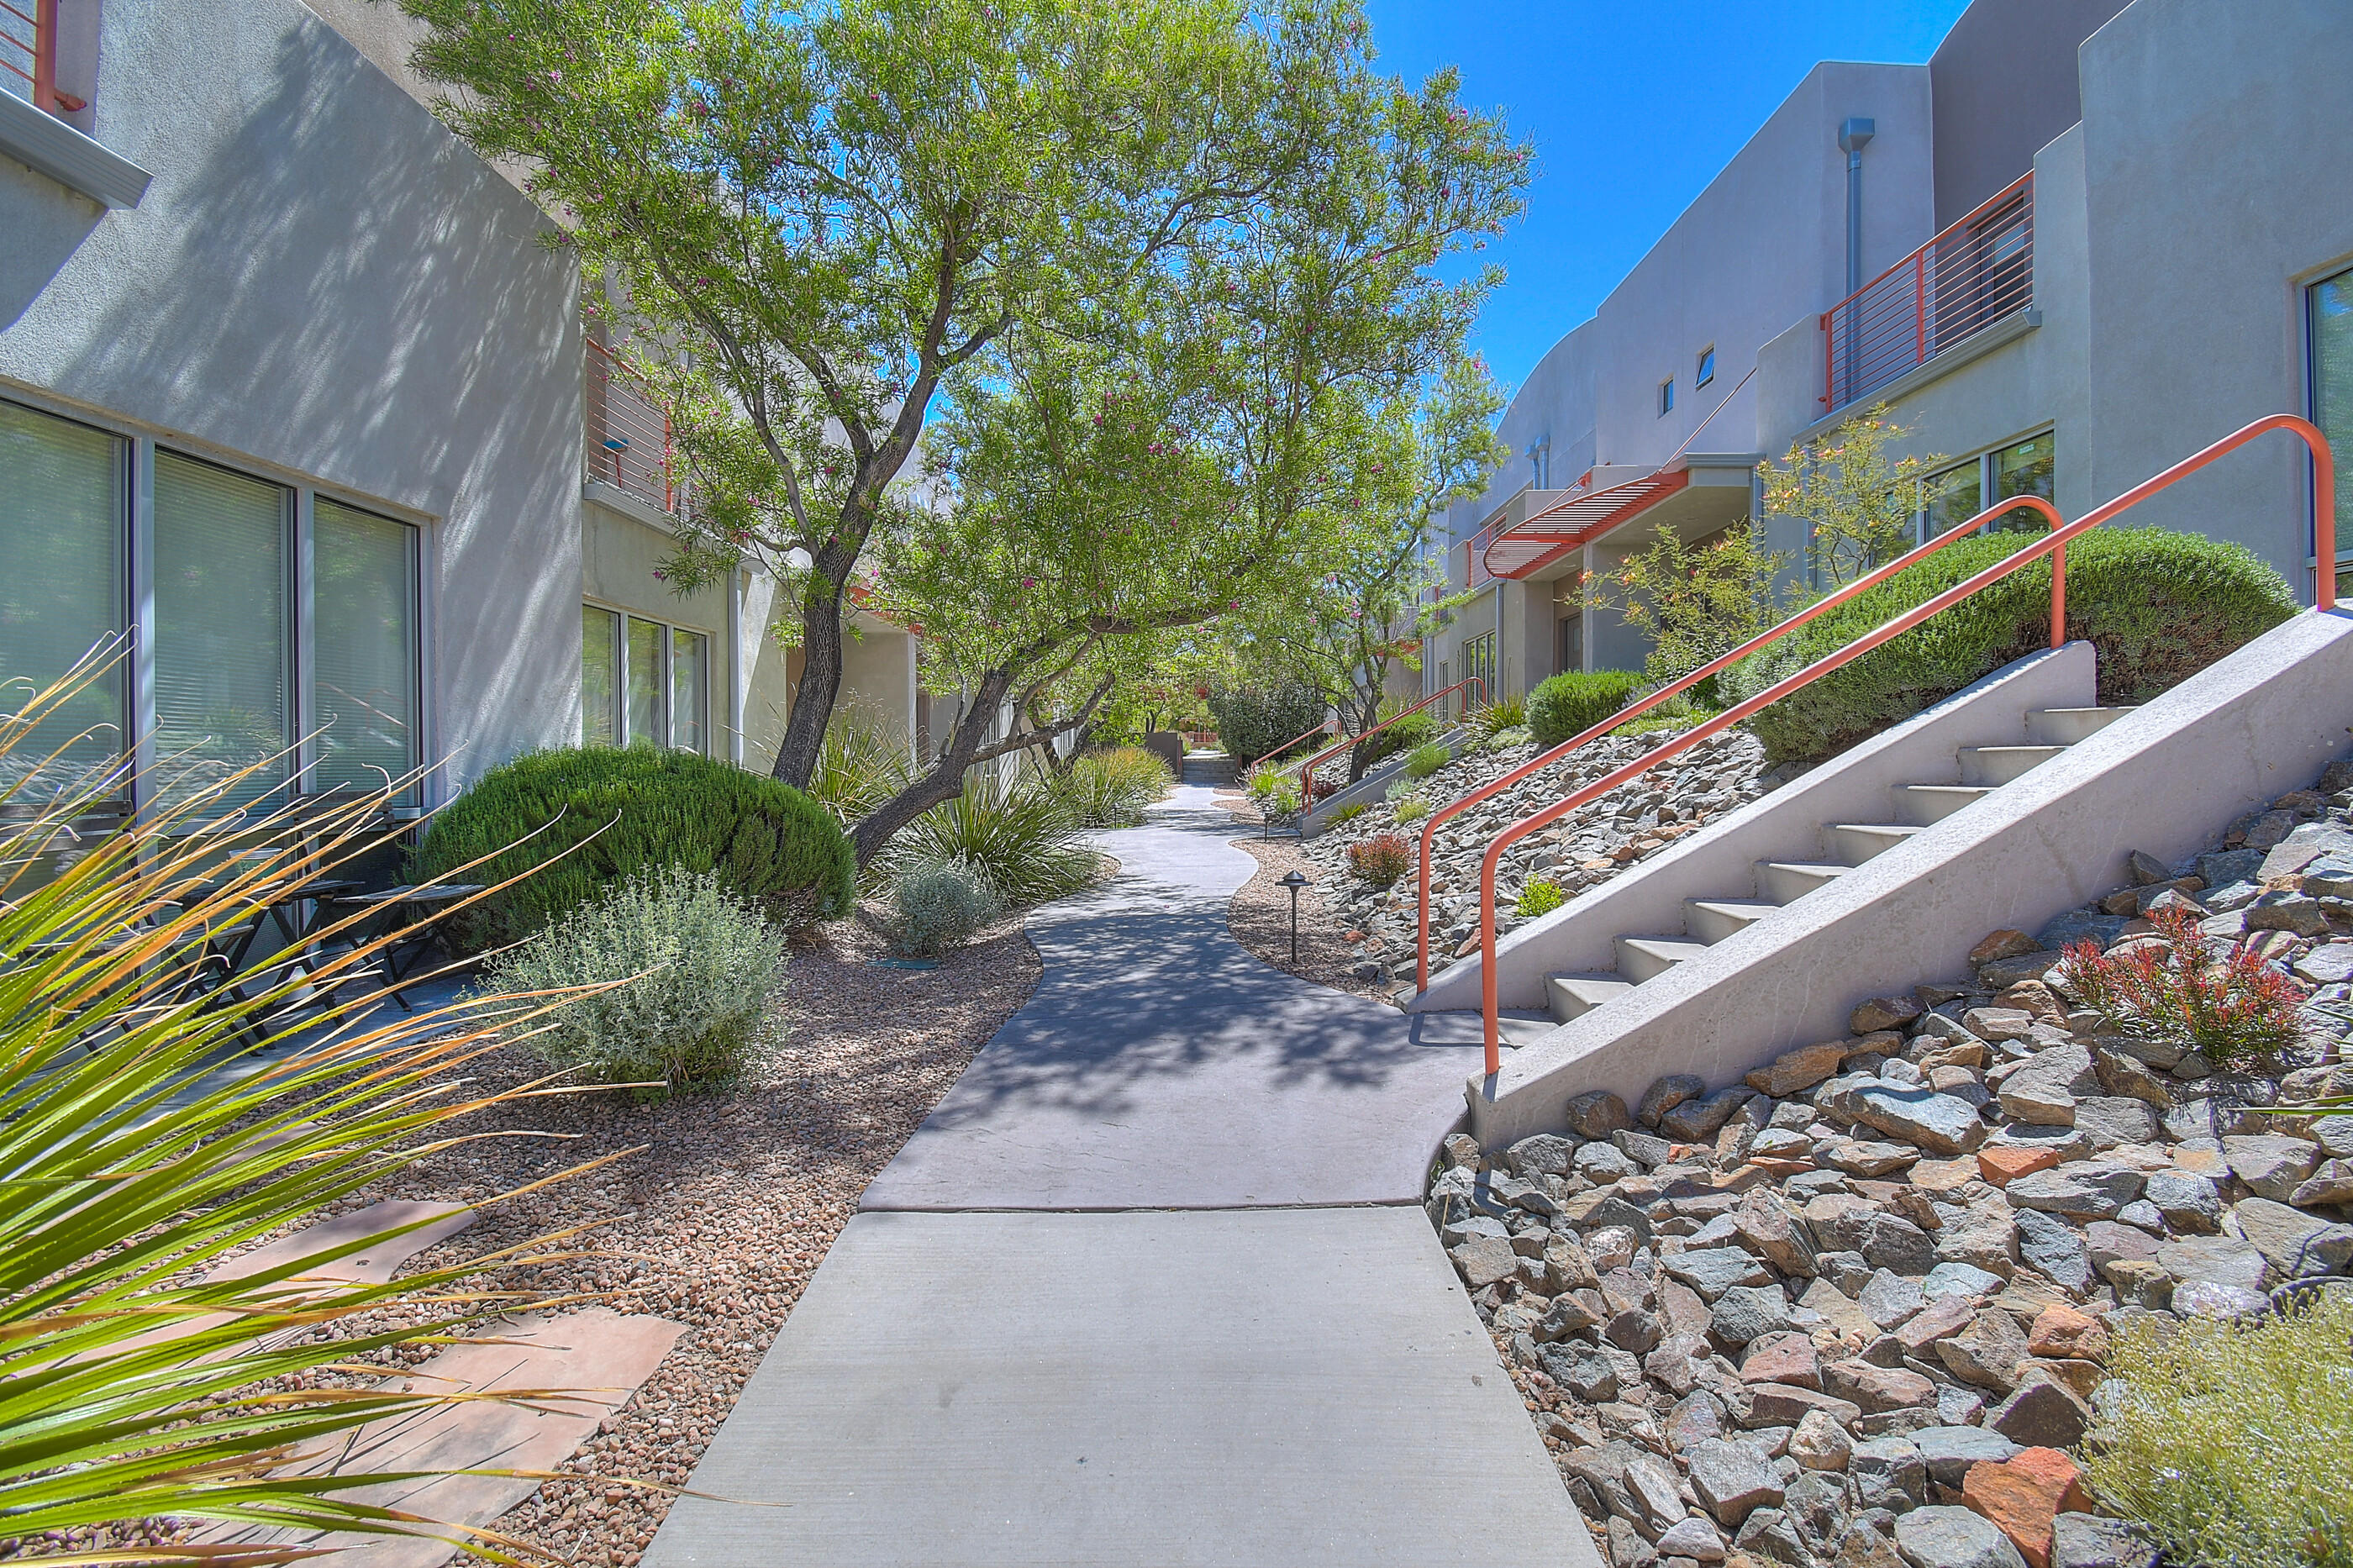 Location! Location! Location! Situated just one block off of Central in the heart of Nob Hill, this townhouse has it all! Gated community for privacy, two car garage, private community courtyard and two balconies. Step through the front door to contemporary living with an airy living area, open kitchen with granite counter tops, a sizable dining area, and a charming half bath for convenience. Beautiful french doors lead to a private exterior patio area- great for entertaining. Upstairs there are three spacious bedrooms, a large built-in book shelf and beautiful bathrooms with granite countertops. The spacious master is light and bright and has its own balcony. Organization is breezy with the beautiful California Closet system. Don't miss your opportunity to live in this desirable community